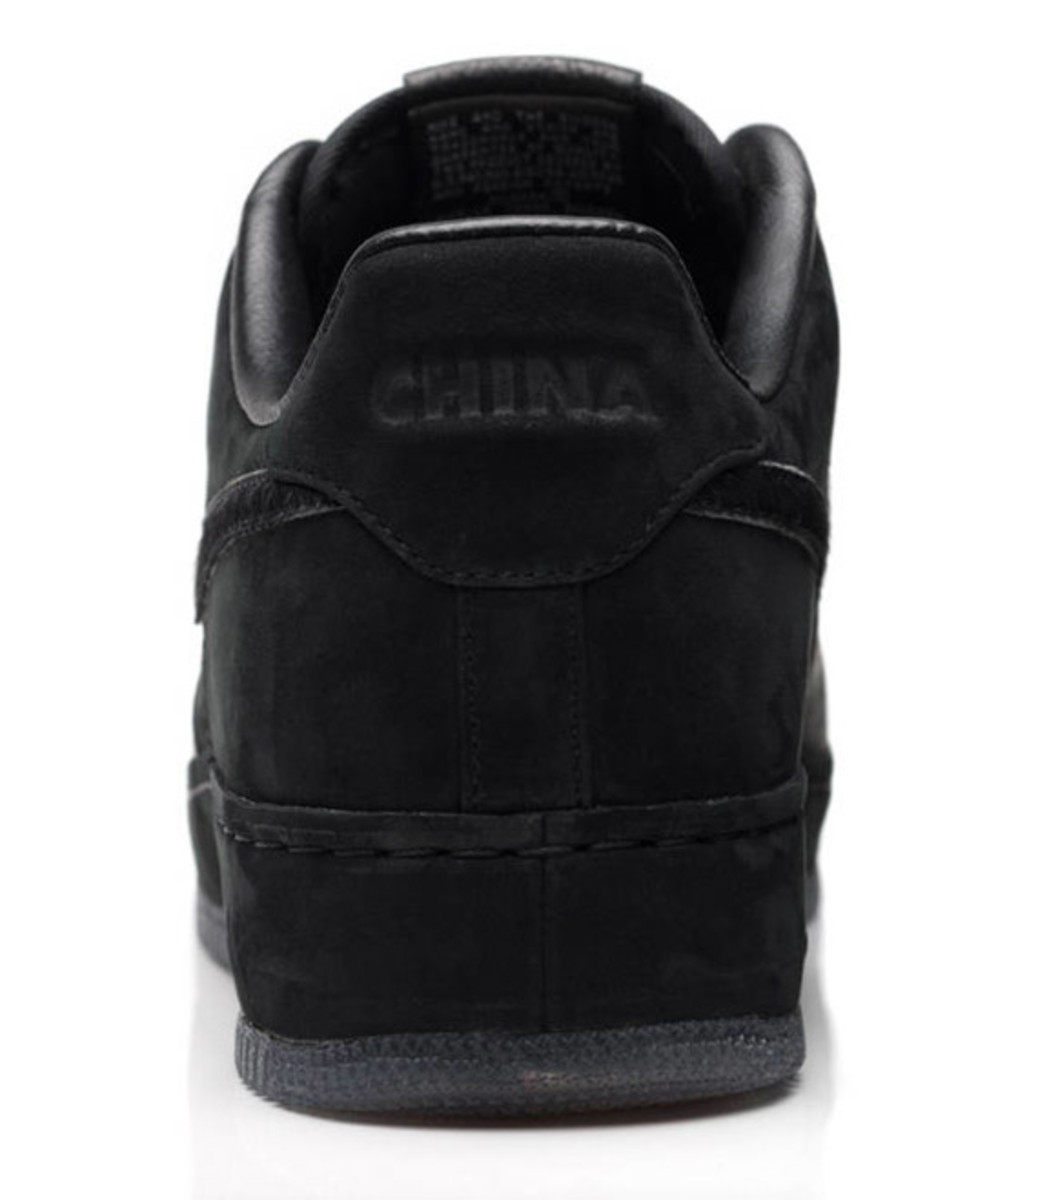 jay-z-nike-air-force-1-all-black-everything-china-07